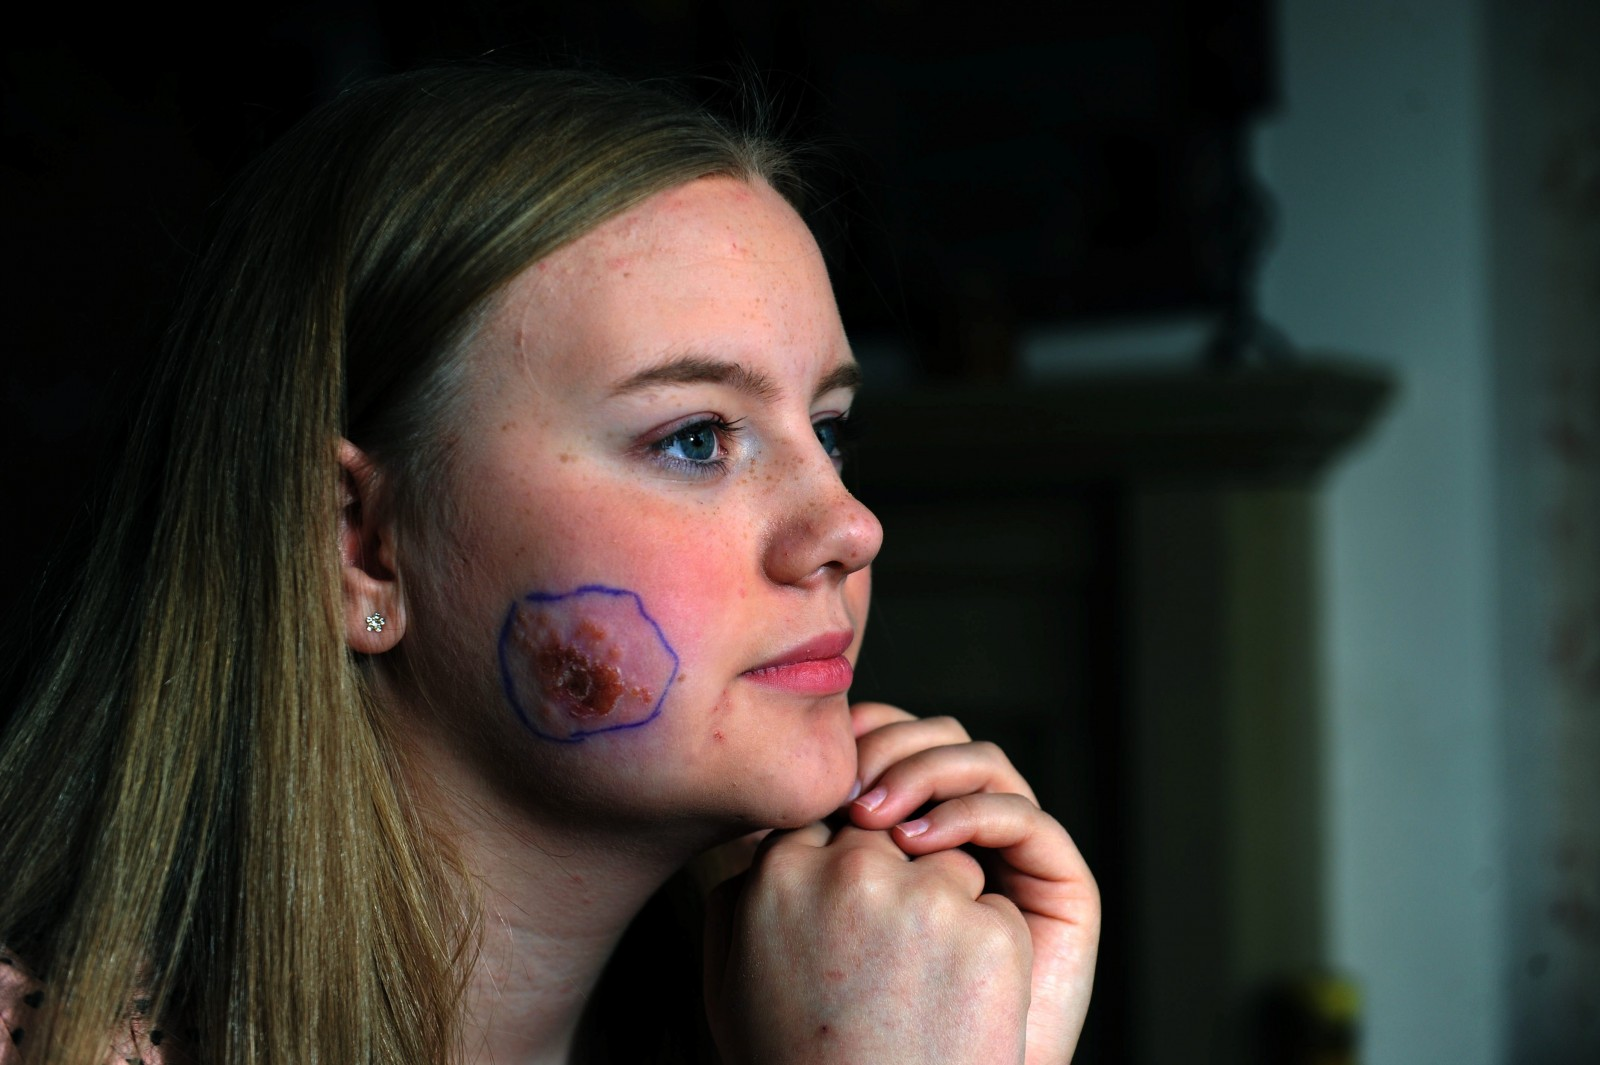 Teenager wakes up with two sinister puncture wounds on her cheek